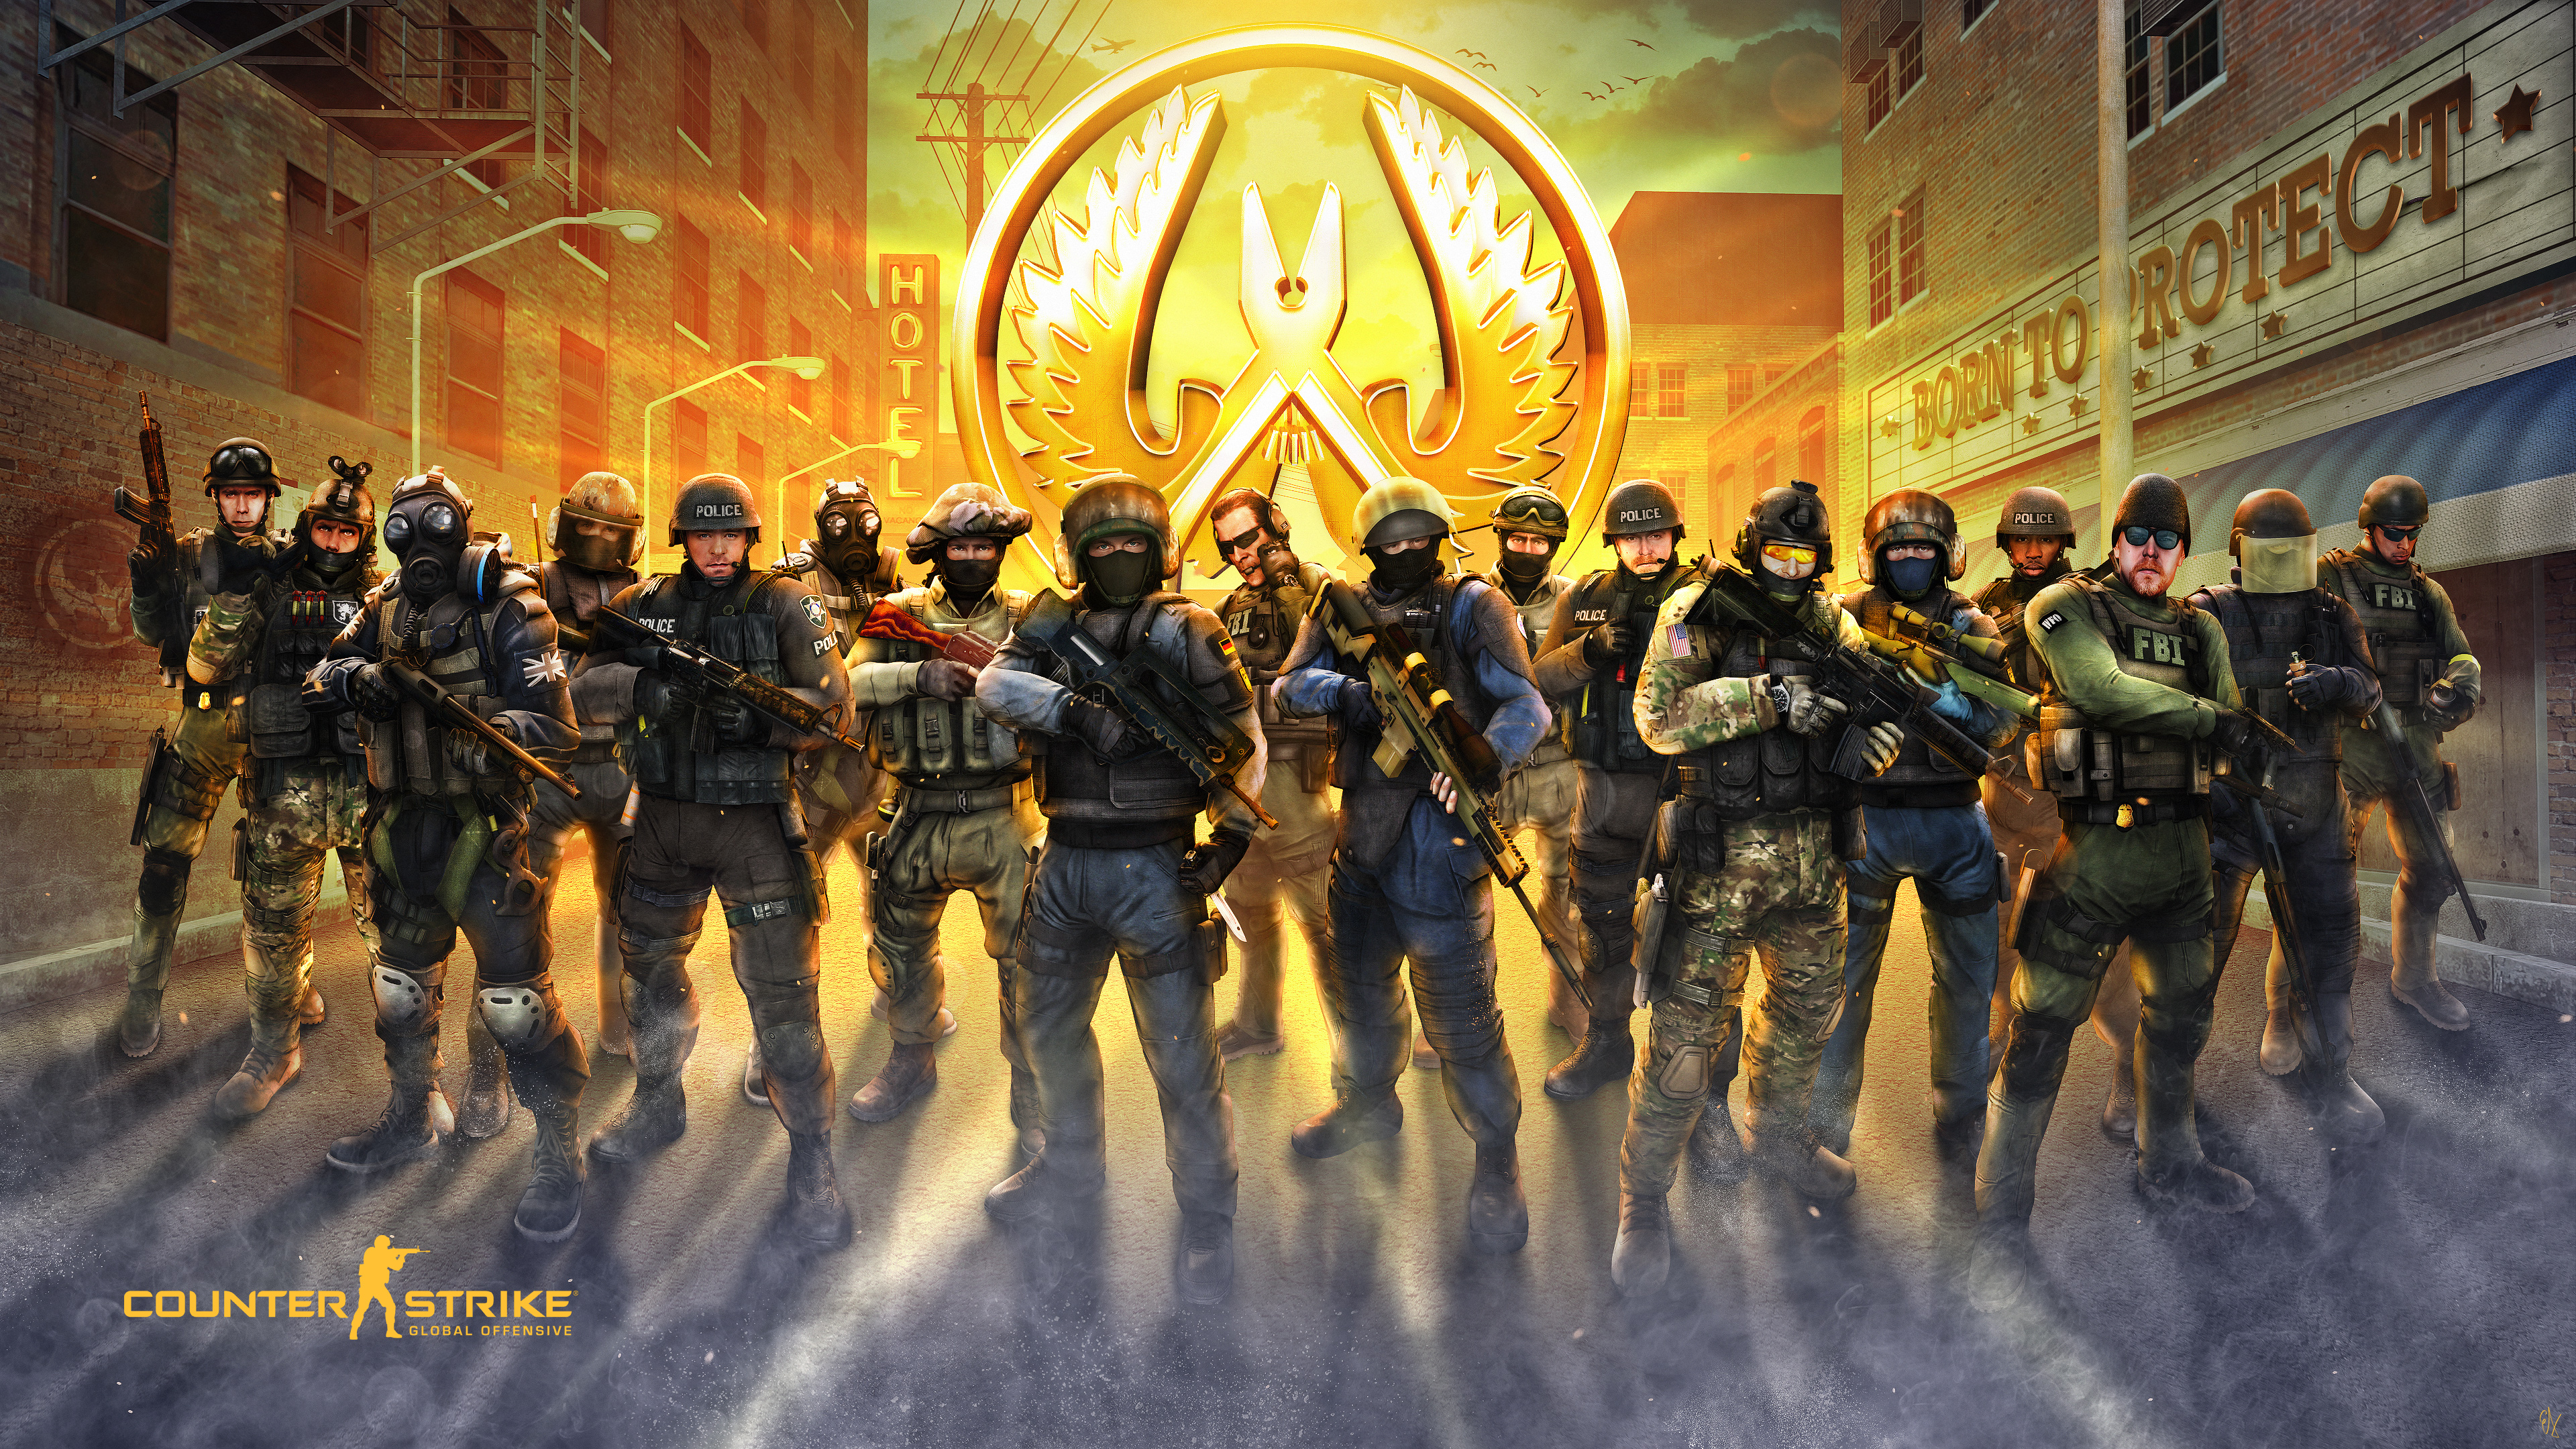 Counter-Strike HD Wallpapers